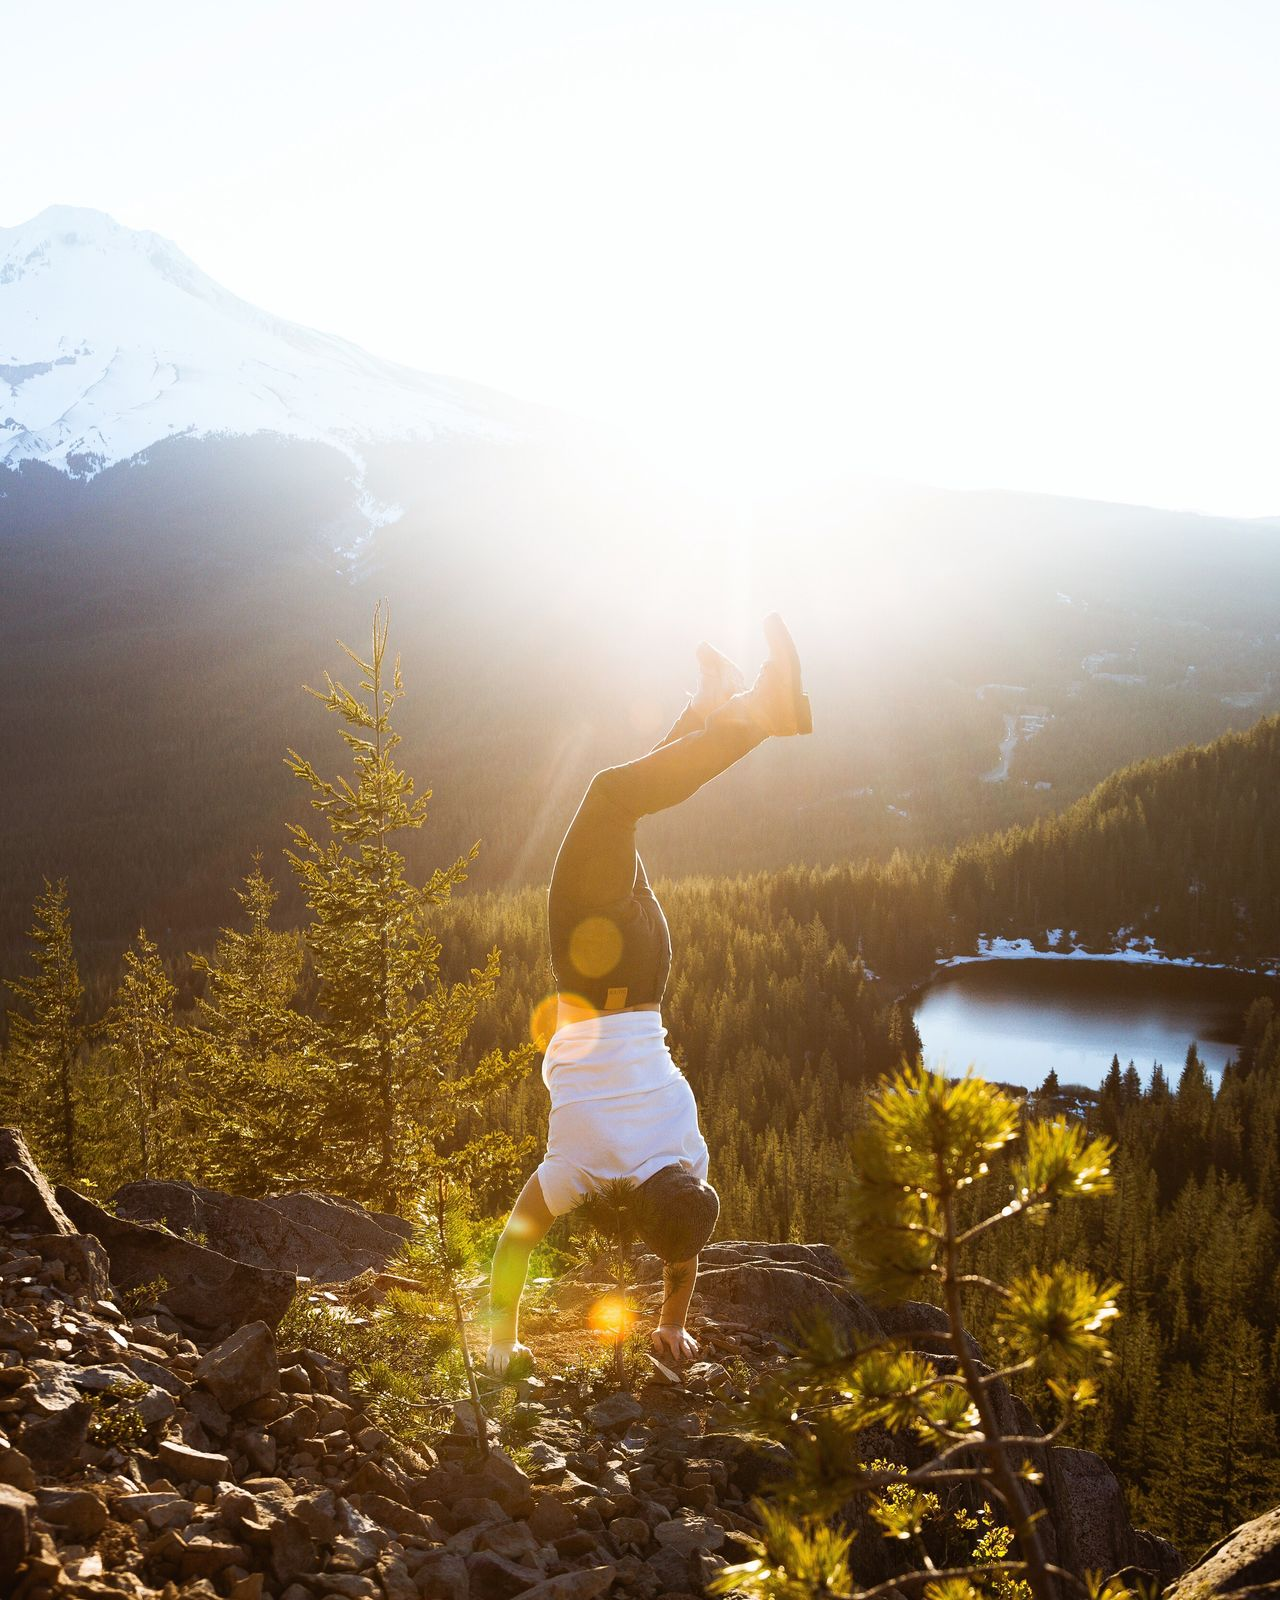 Skipped sleep to do this.. Live For The Story Nature Mountain Lake One Person Beauty In Nature Leisure Activity Outdoors Tranquility Casual Clothing Tranquil Scene Real People Sunlight Scenics Only Women Lifestyles Full Length One Woman Only Day Women Landscape